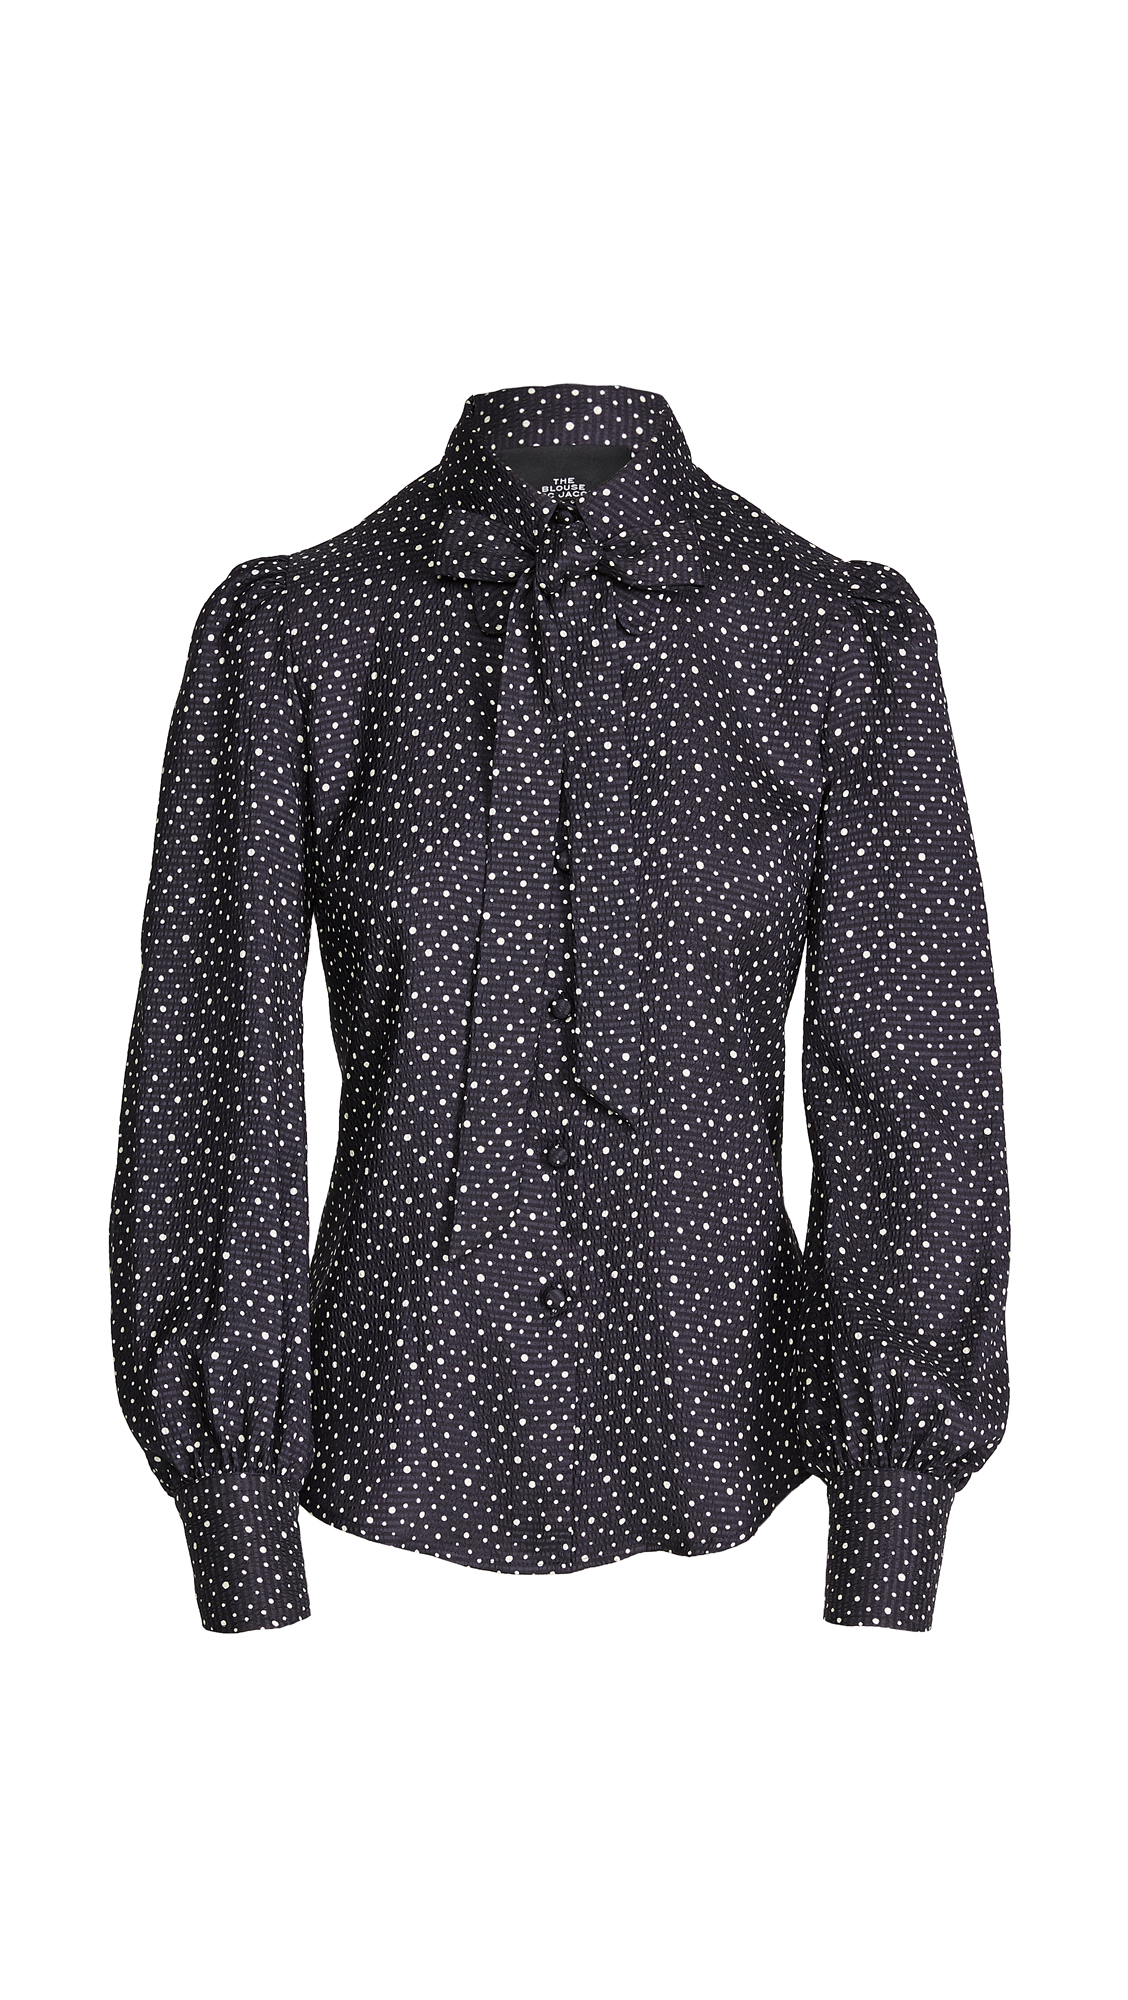 The Marc Jacobs The Blouse